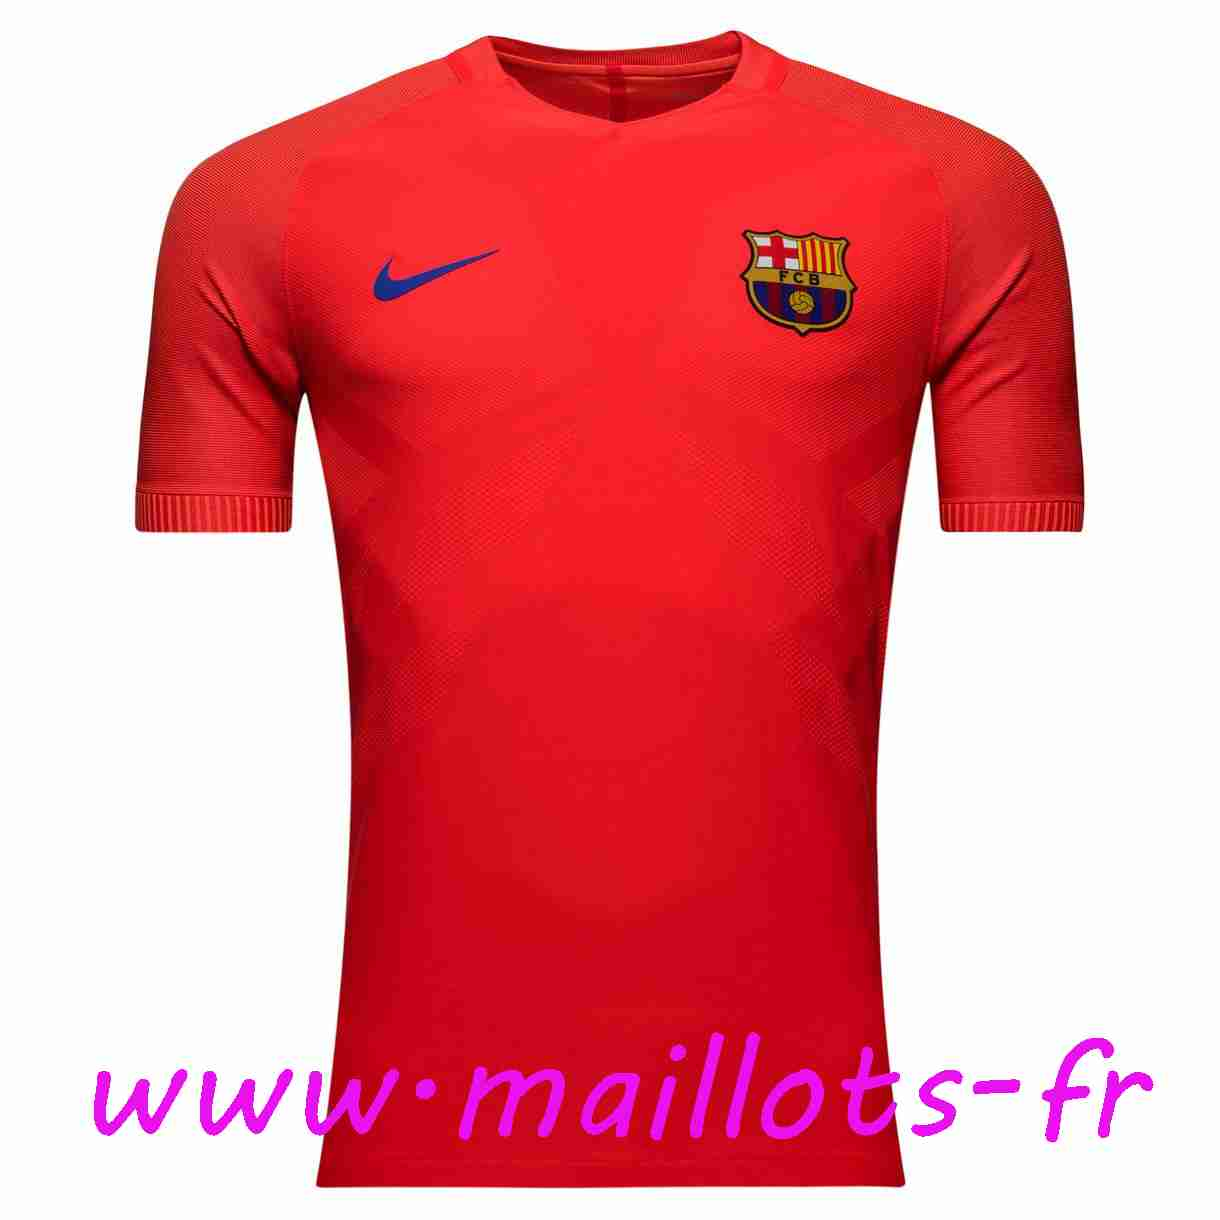 maillots-fr - Training T-Shirt FC Barcelone Rouge 2016 2017